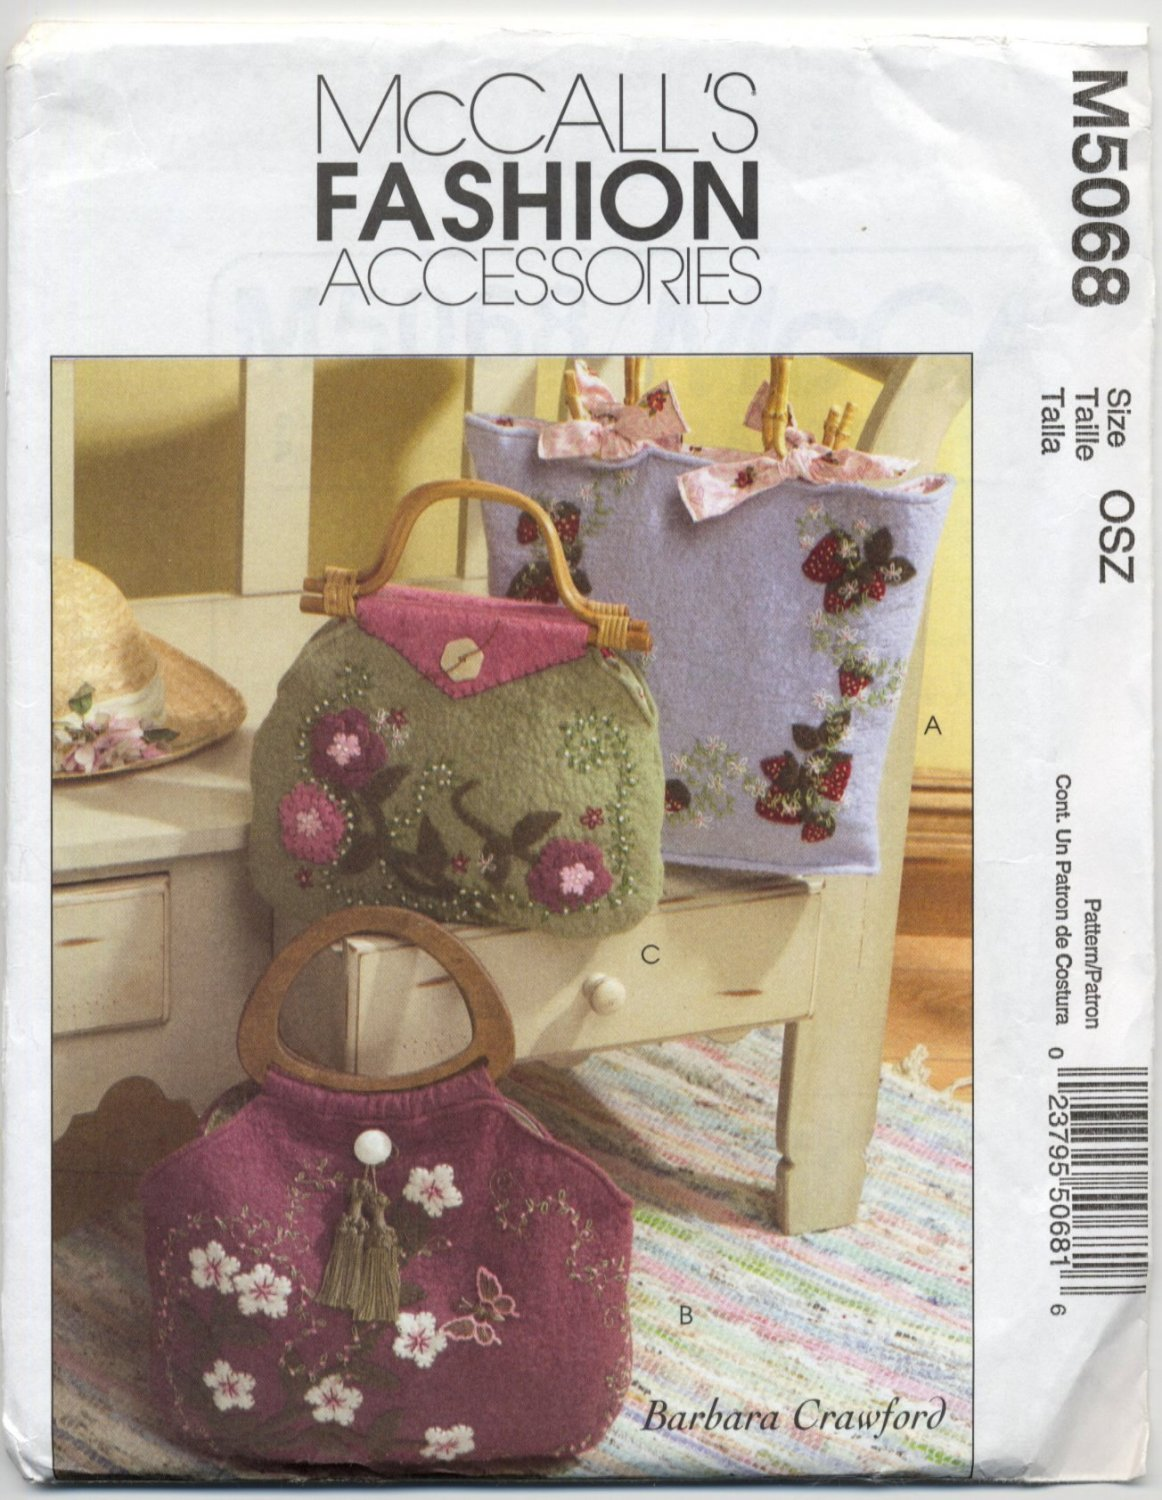 McCall's 5068 Lined Felt Handbags Applique & Embroidery Embellishment Sewing Pattern Inside Pocket